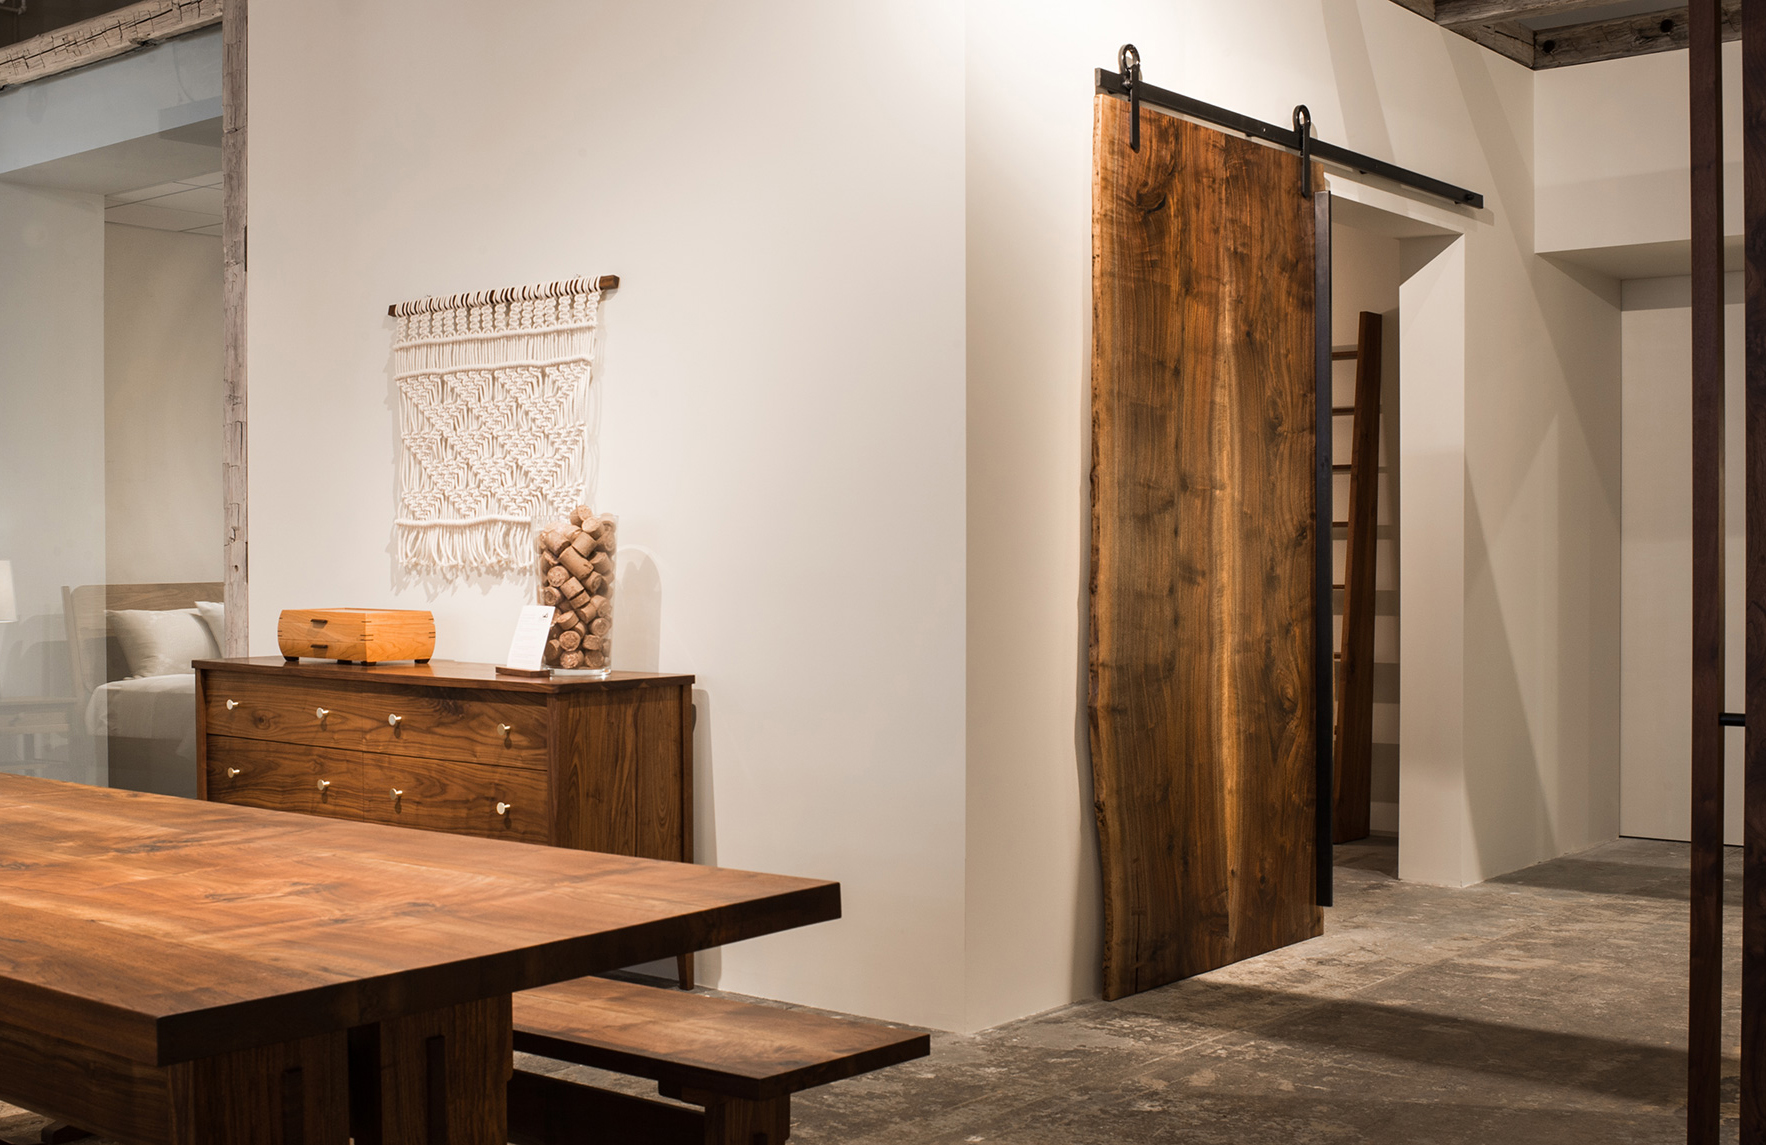 THE JOINERY'S DOWNTOWN SHOWROOM